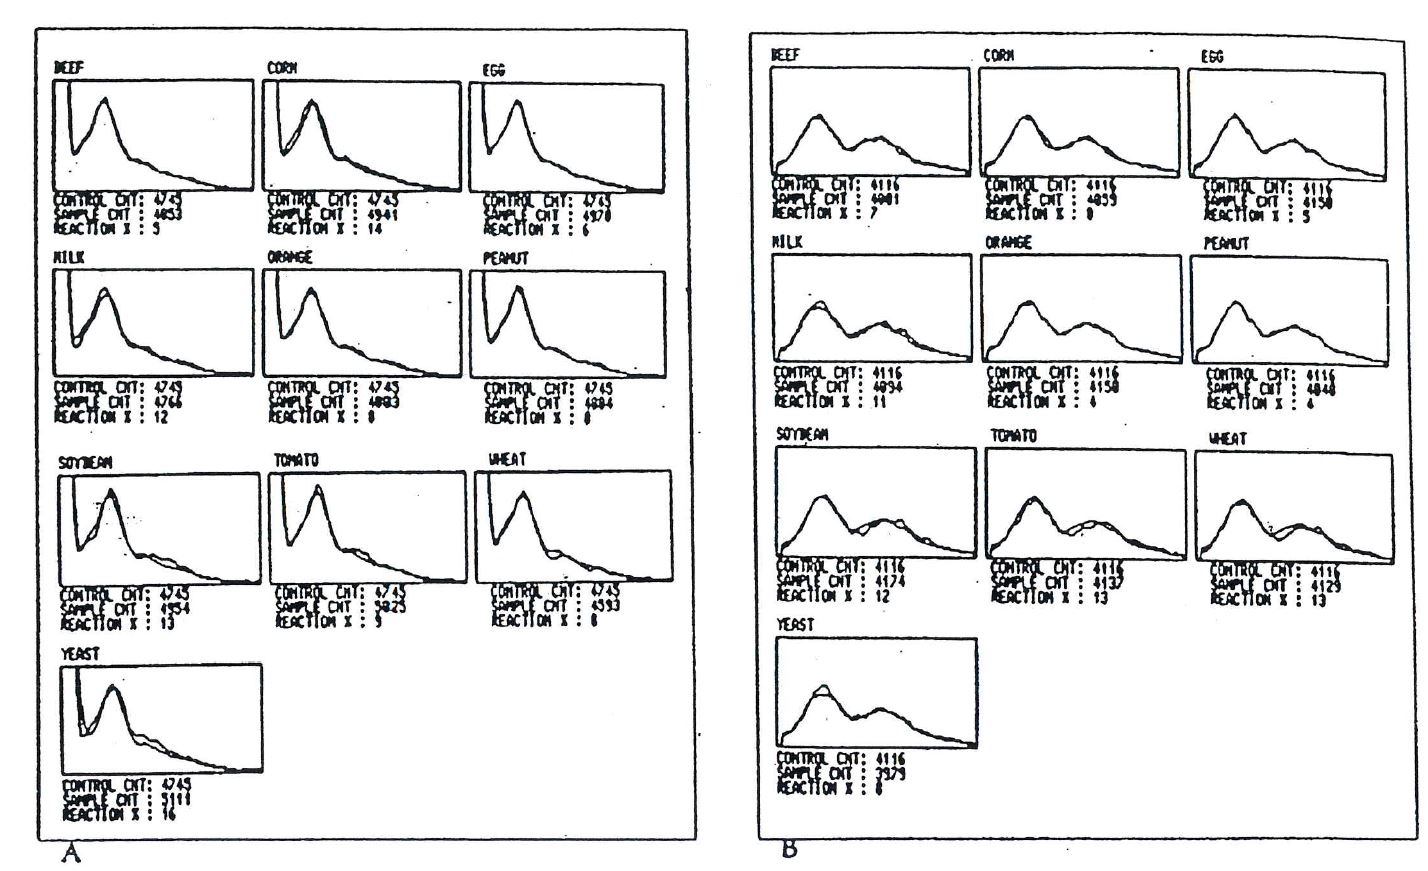 Two sets of Alcat Test graphic histogram results for patient 1